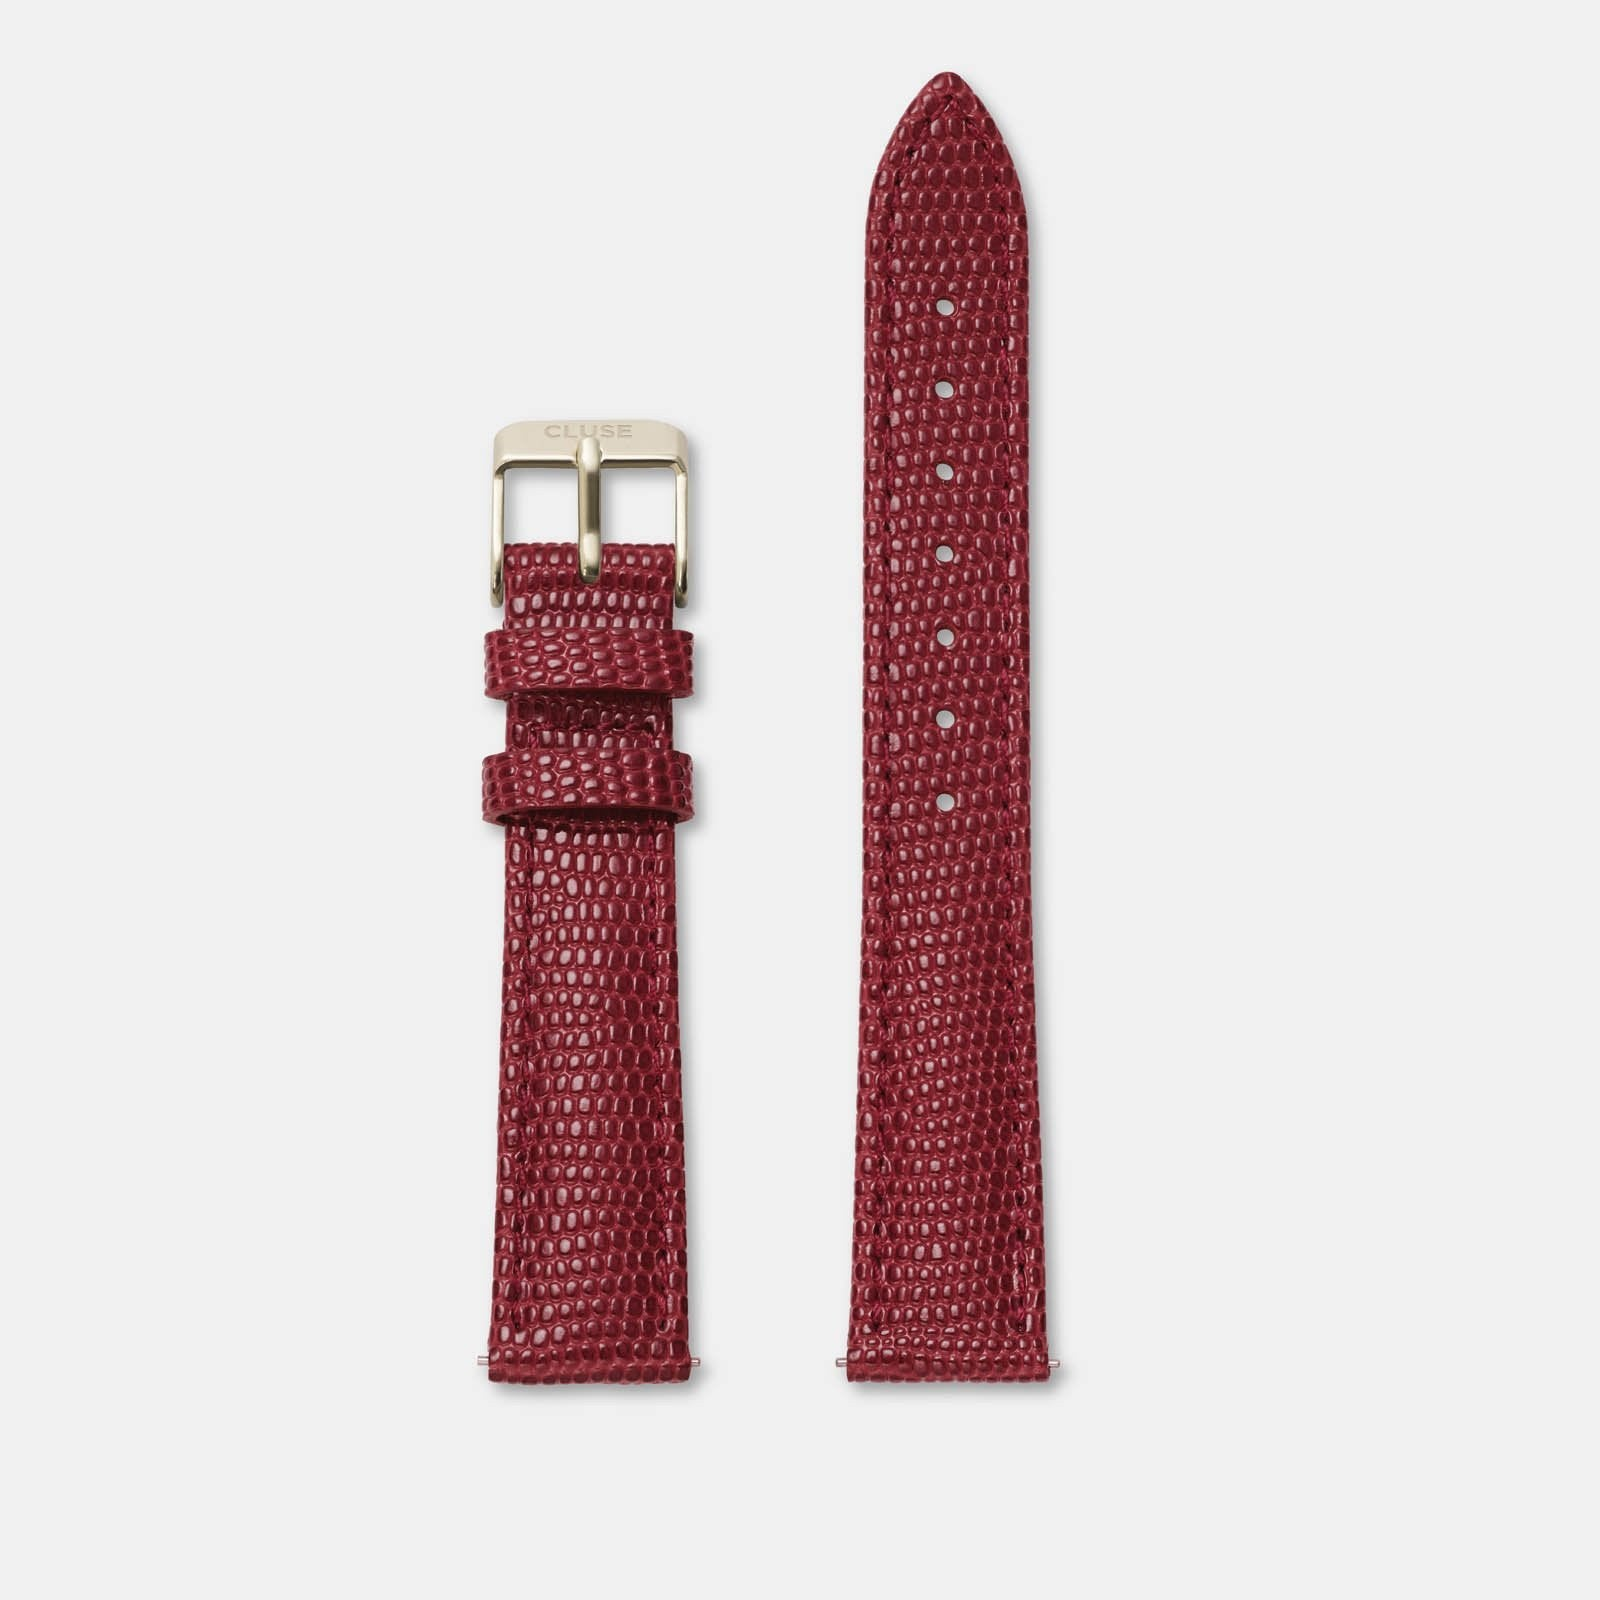 CLUSE 16 mm Strap Deep Red Lizard/Gold CLS382 - bandje